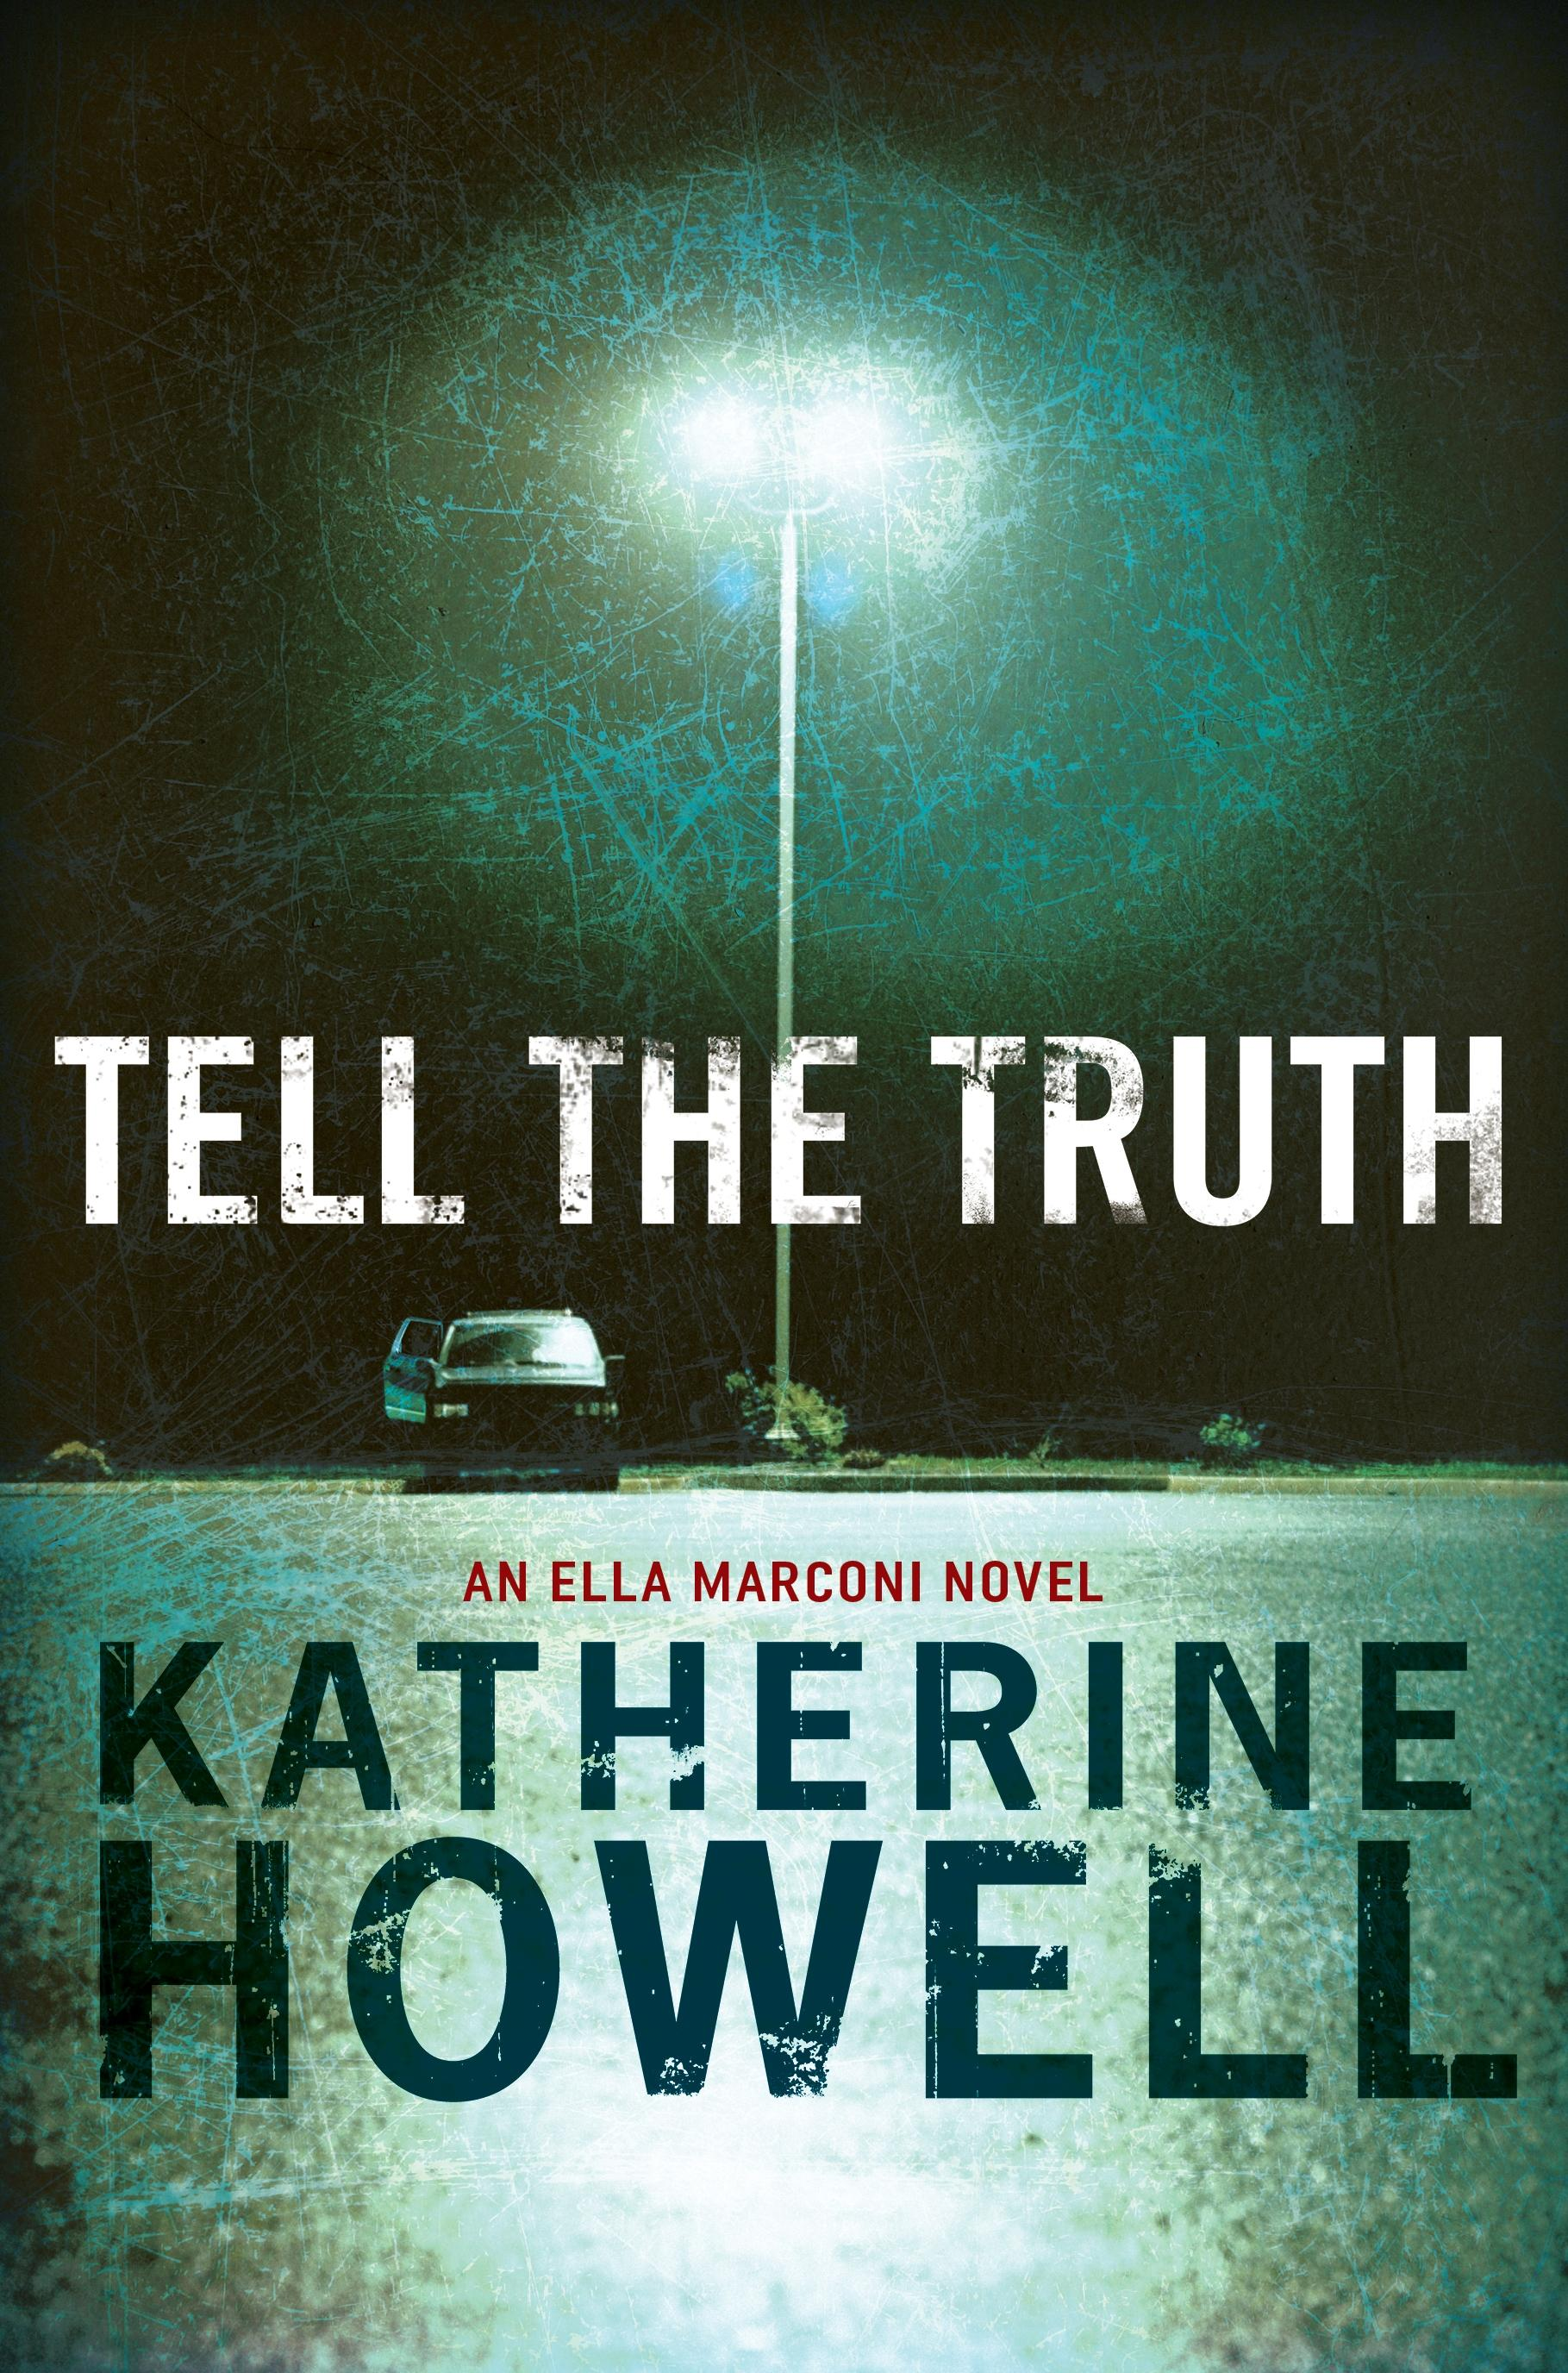 Tell the Truth: An Ella Marconi Novel 8 by Katherine Howell, ISBN: 9781743532911